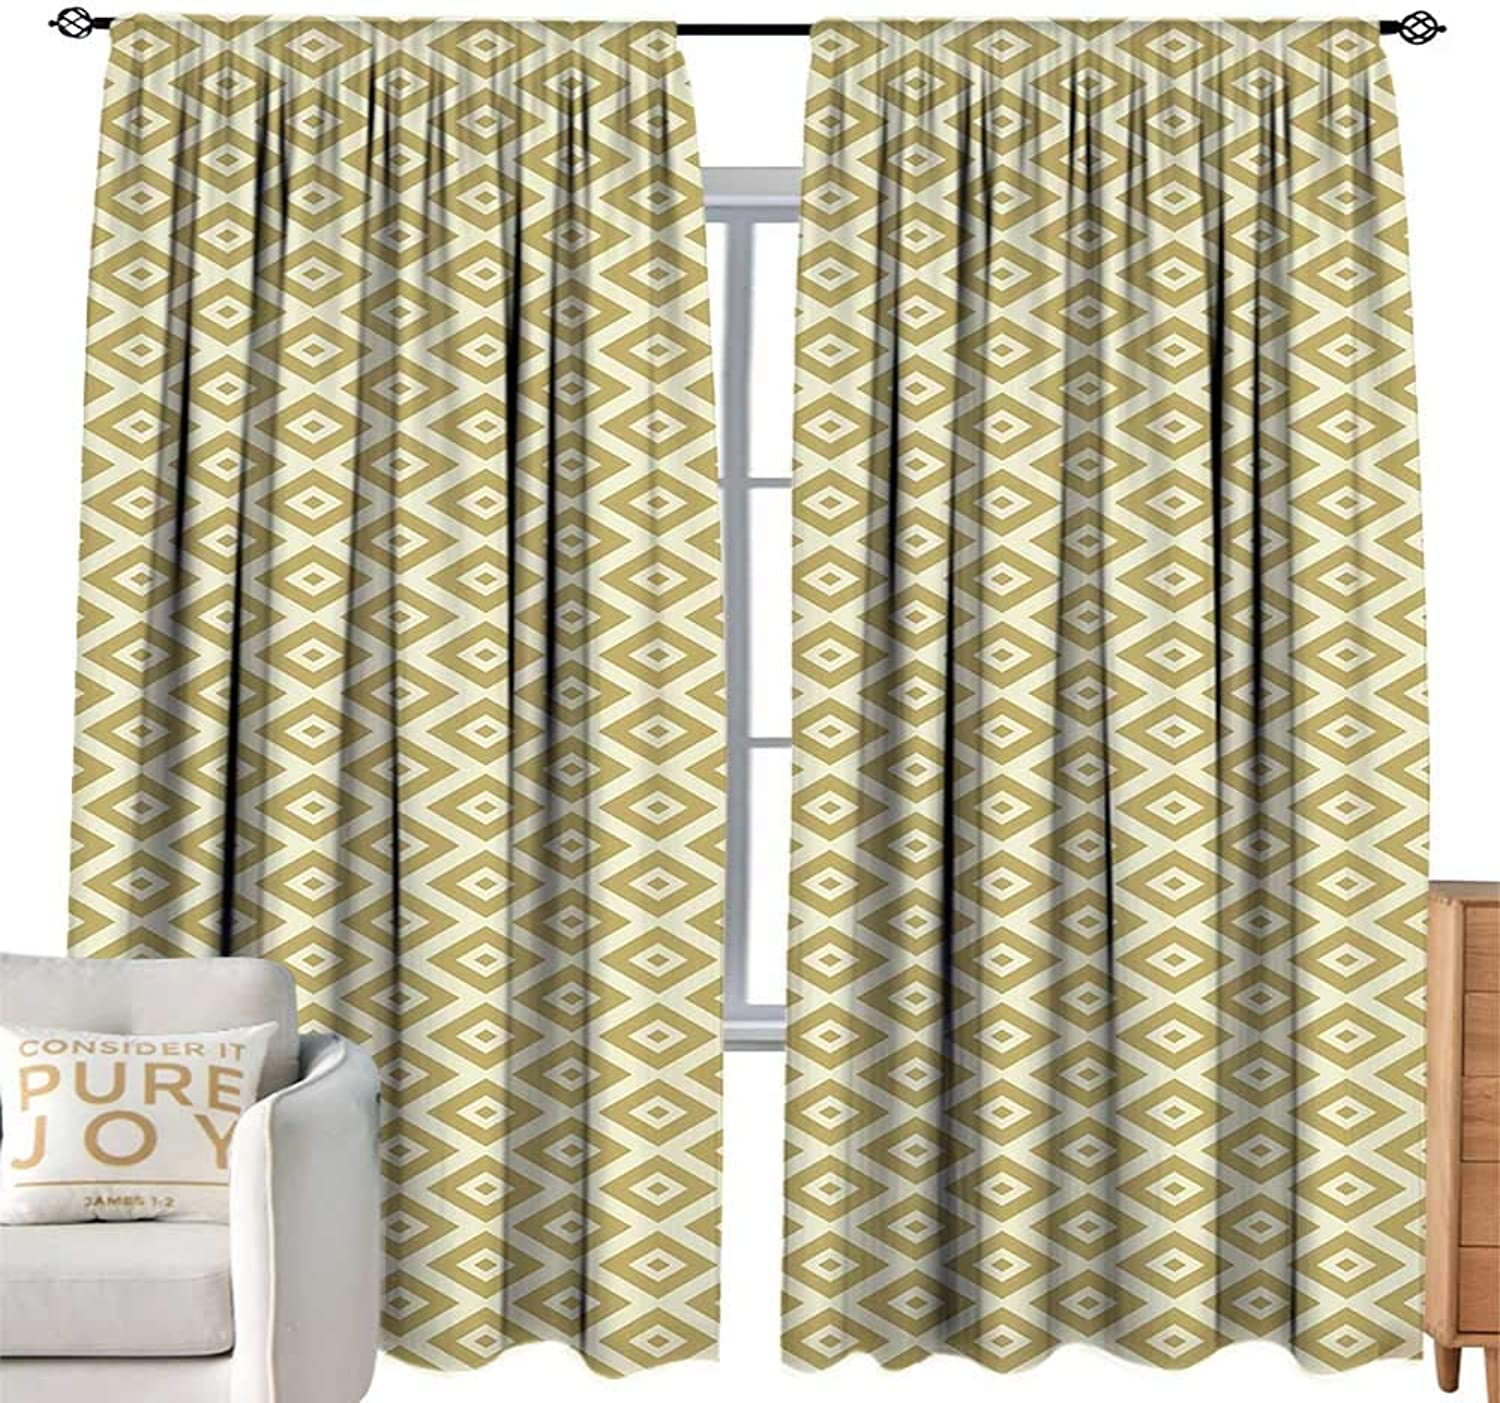 CobeDecor Extra Long Curtain Geometric Oriental Squares and Rectangles Dots Abstract Soft colord Middle Eastern Pale Yellow Khaki Soft Texture W96 xL84